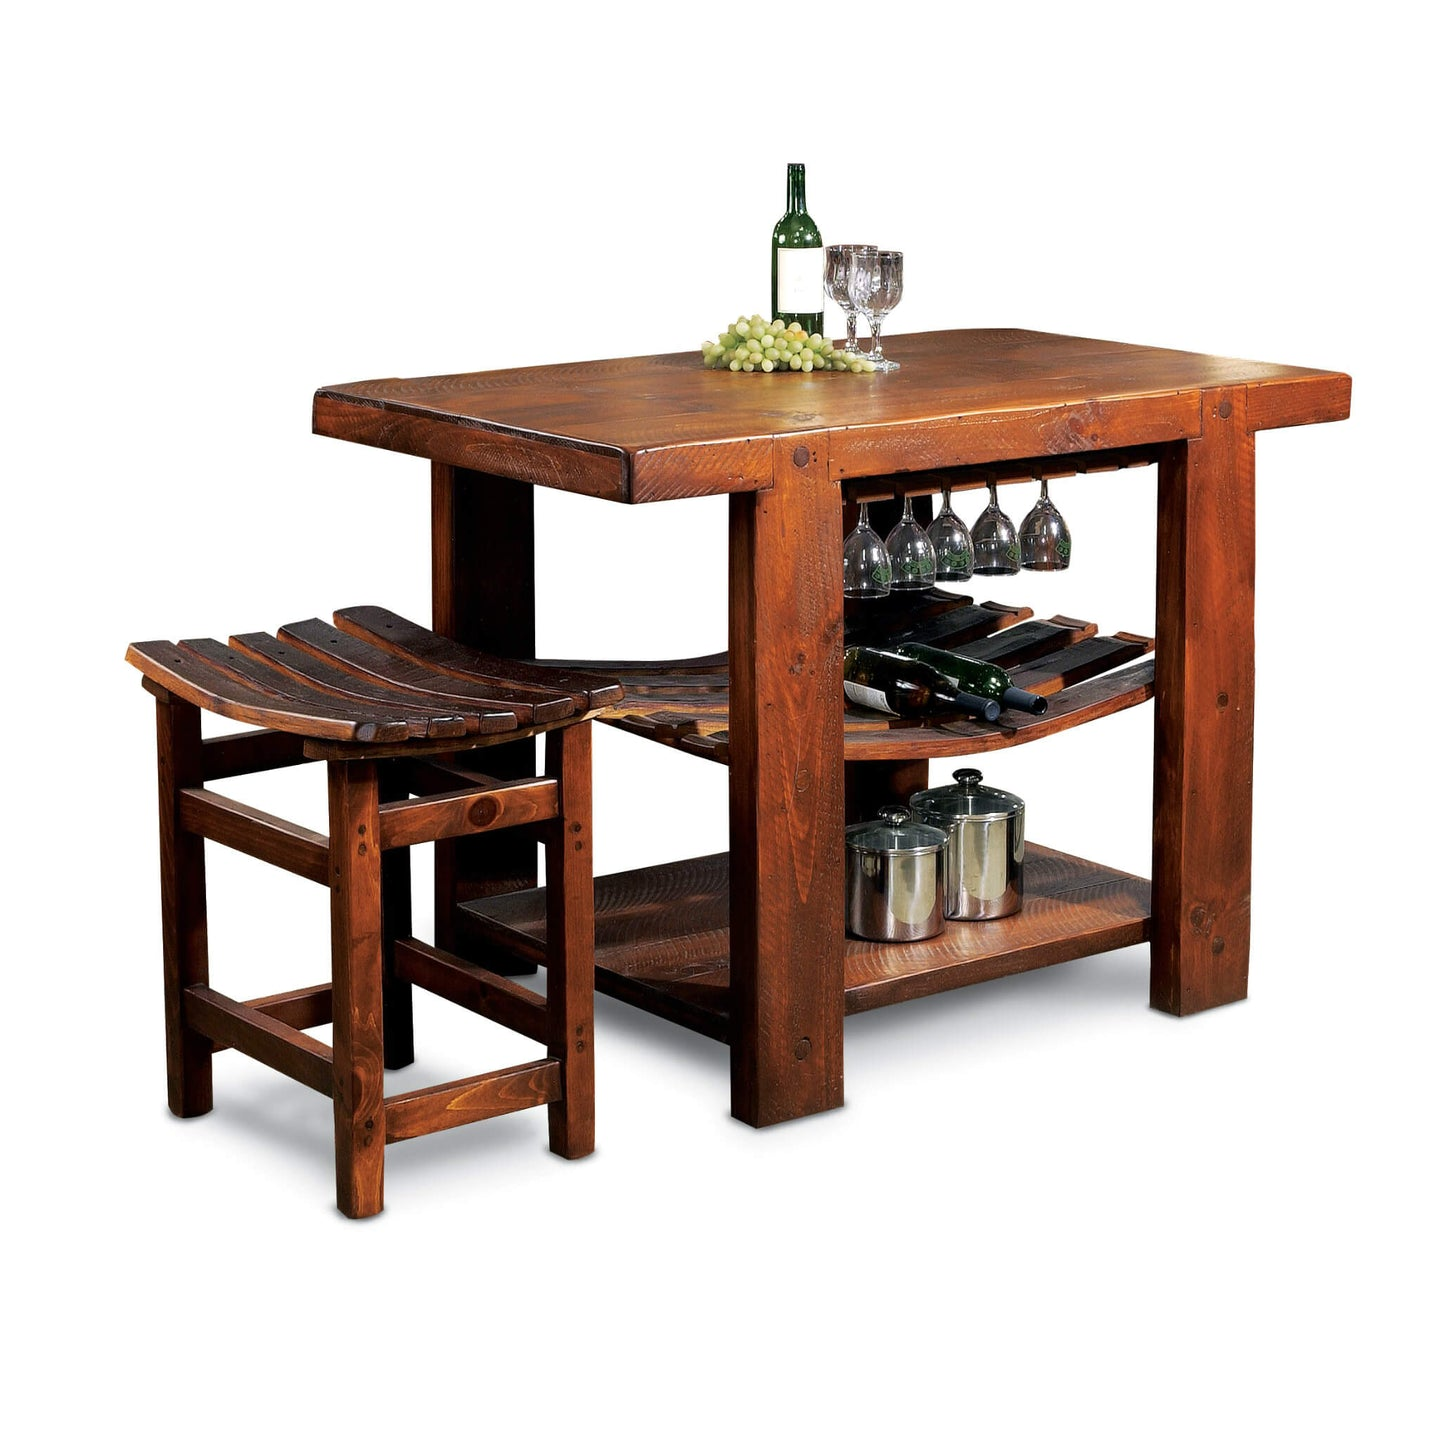 2-DAY DESIGNS RUSSIAN RIVER KITCHEN ISLAND